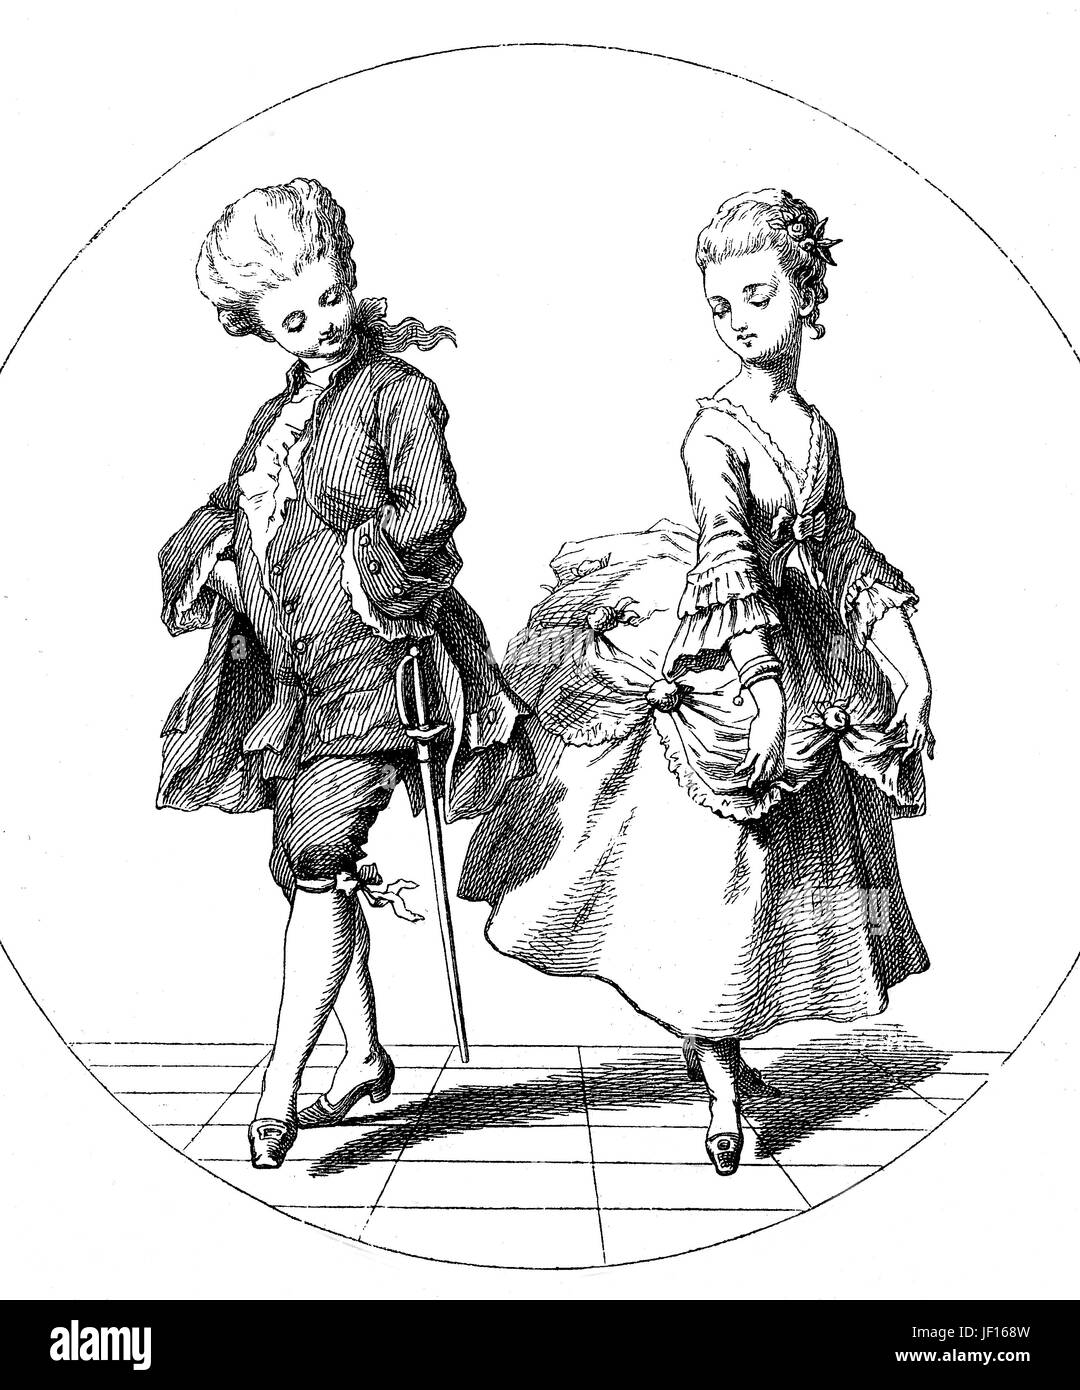 Historical illustration of a couple dancing the Pas-de-deux, dance duet in which two dancers, Digital improved reproduction - Stock Image